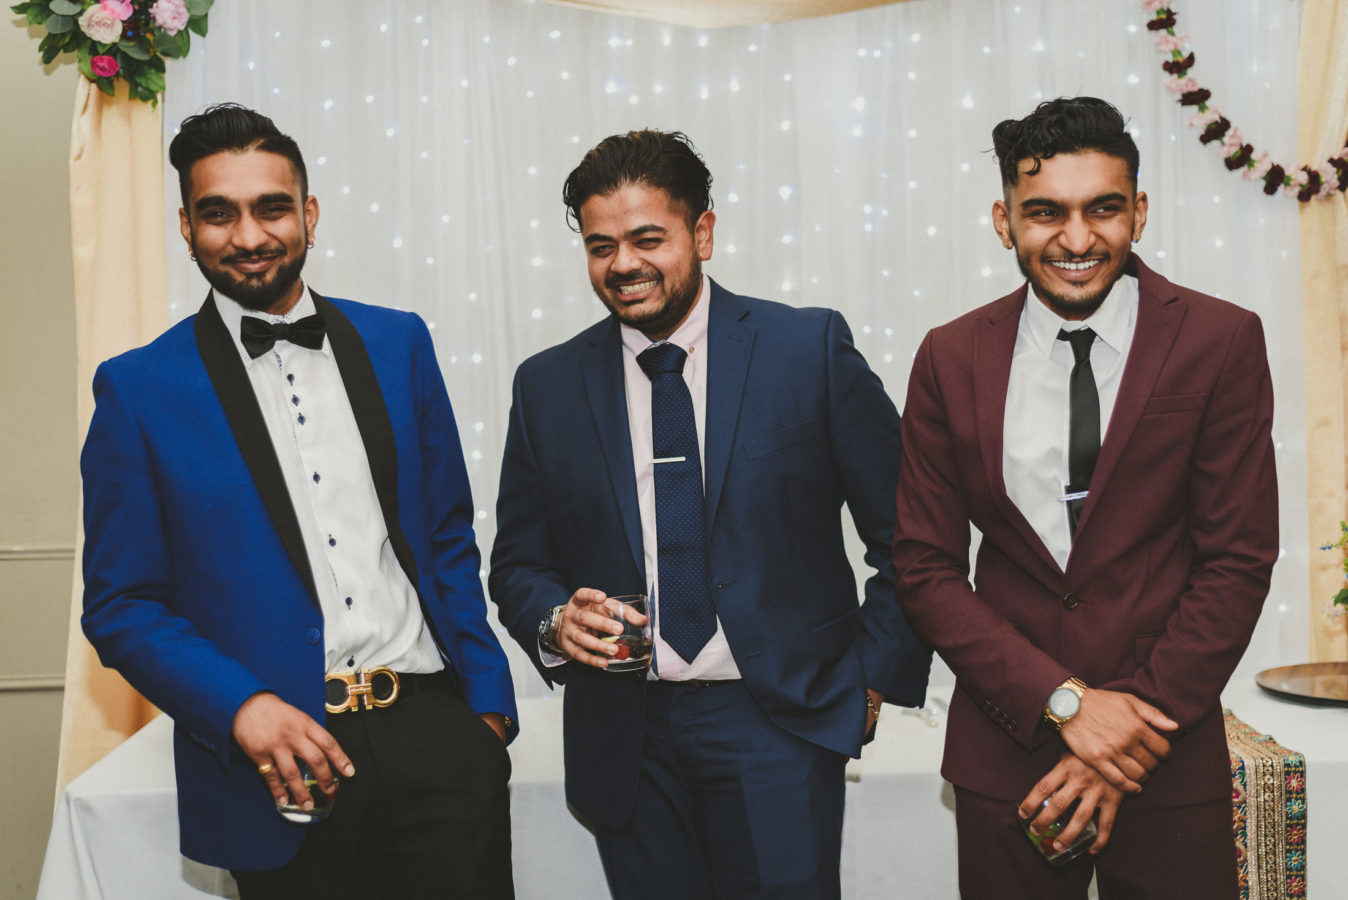 three well dressed men laughing at a wedding